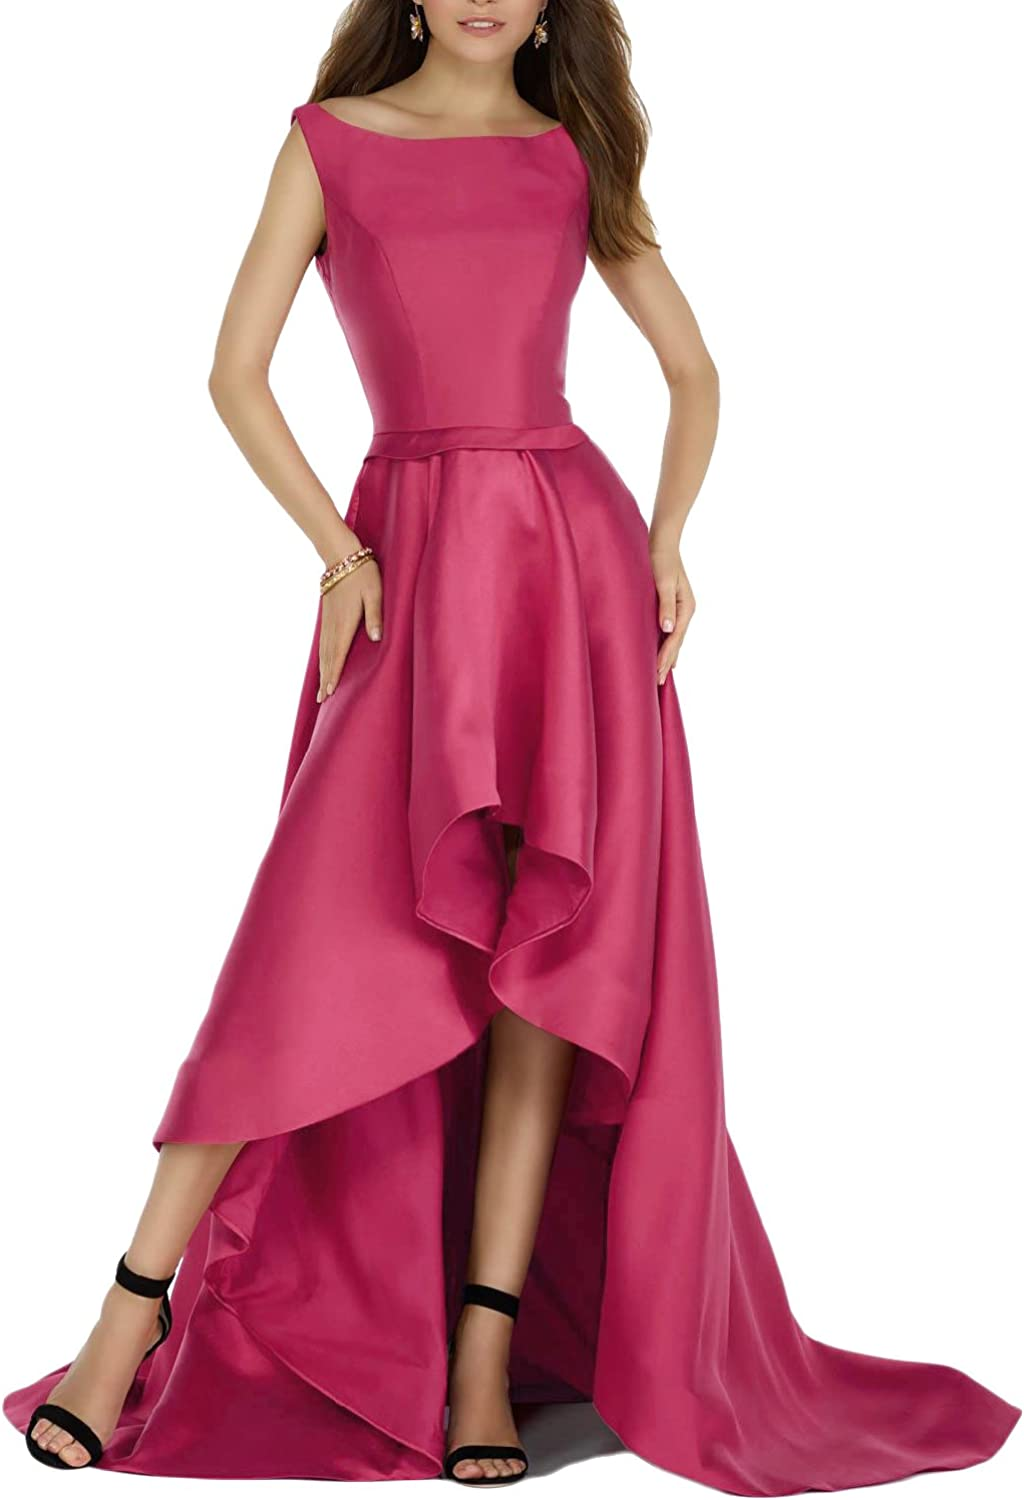 YSMei Womes High Low Boat Neck Prom Dress Backless Wedding Evening Dress YPM413A